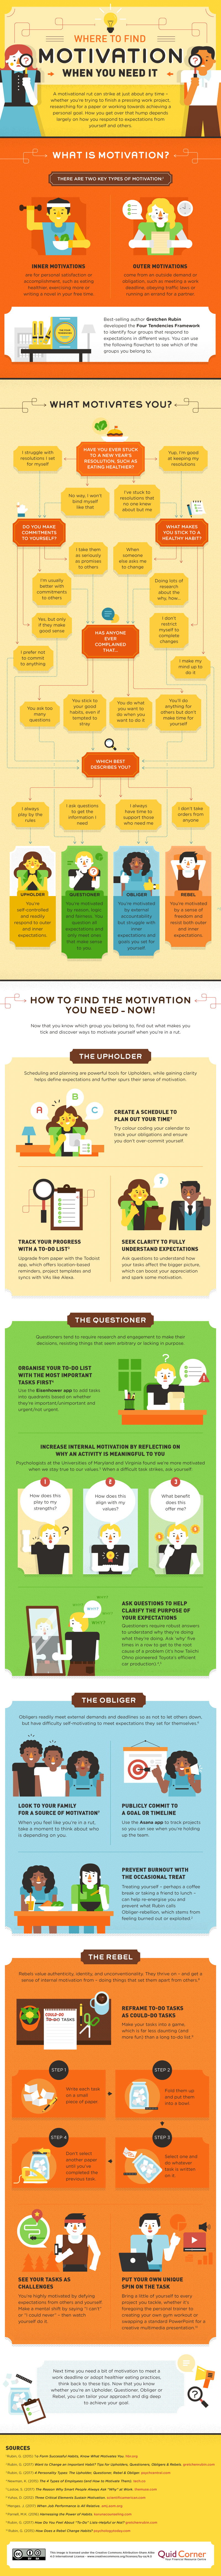 How To Motivate Yourself To Work [Infographic]